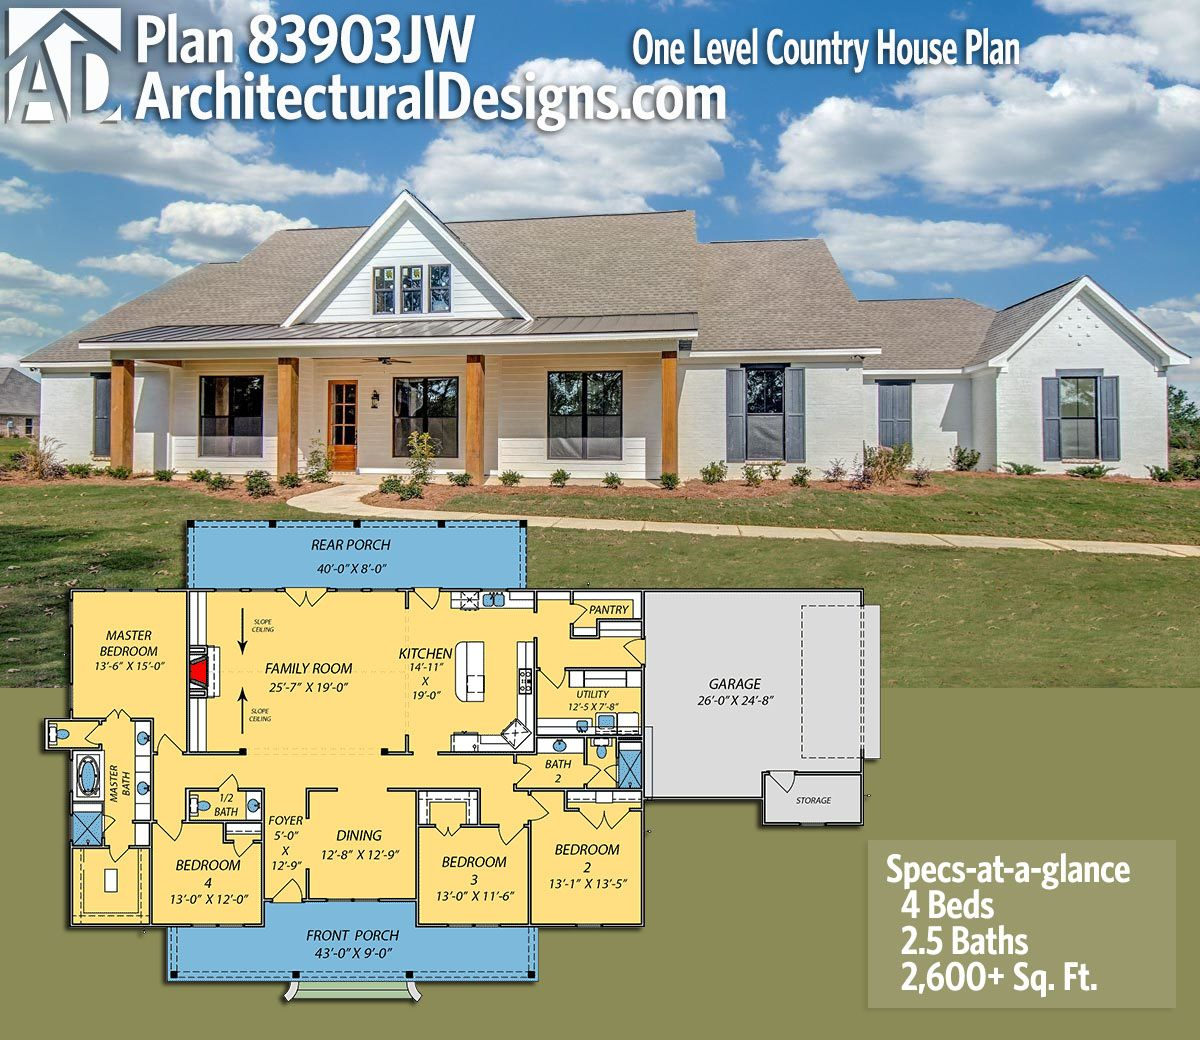 Plan 83903jw one level country house plan architectural for One level living floor plans